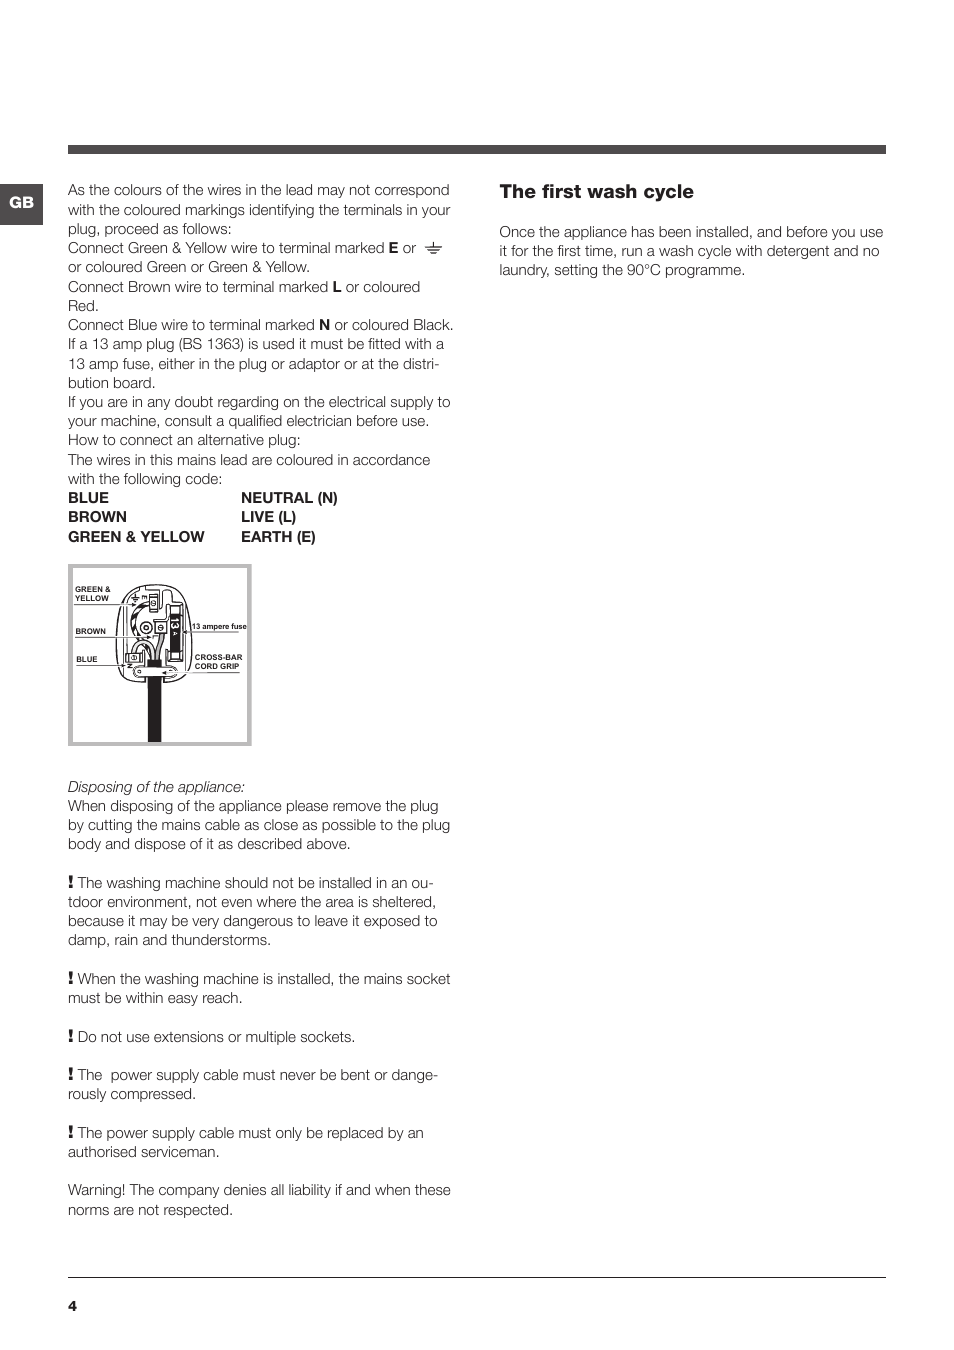 Indesit Iwdc 6125 The First Wash Cycle Indesit Iwdc 6125 S User Manual Page 4